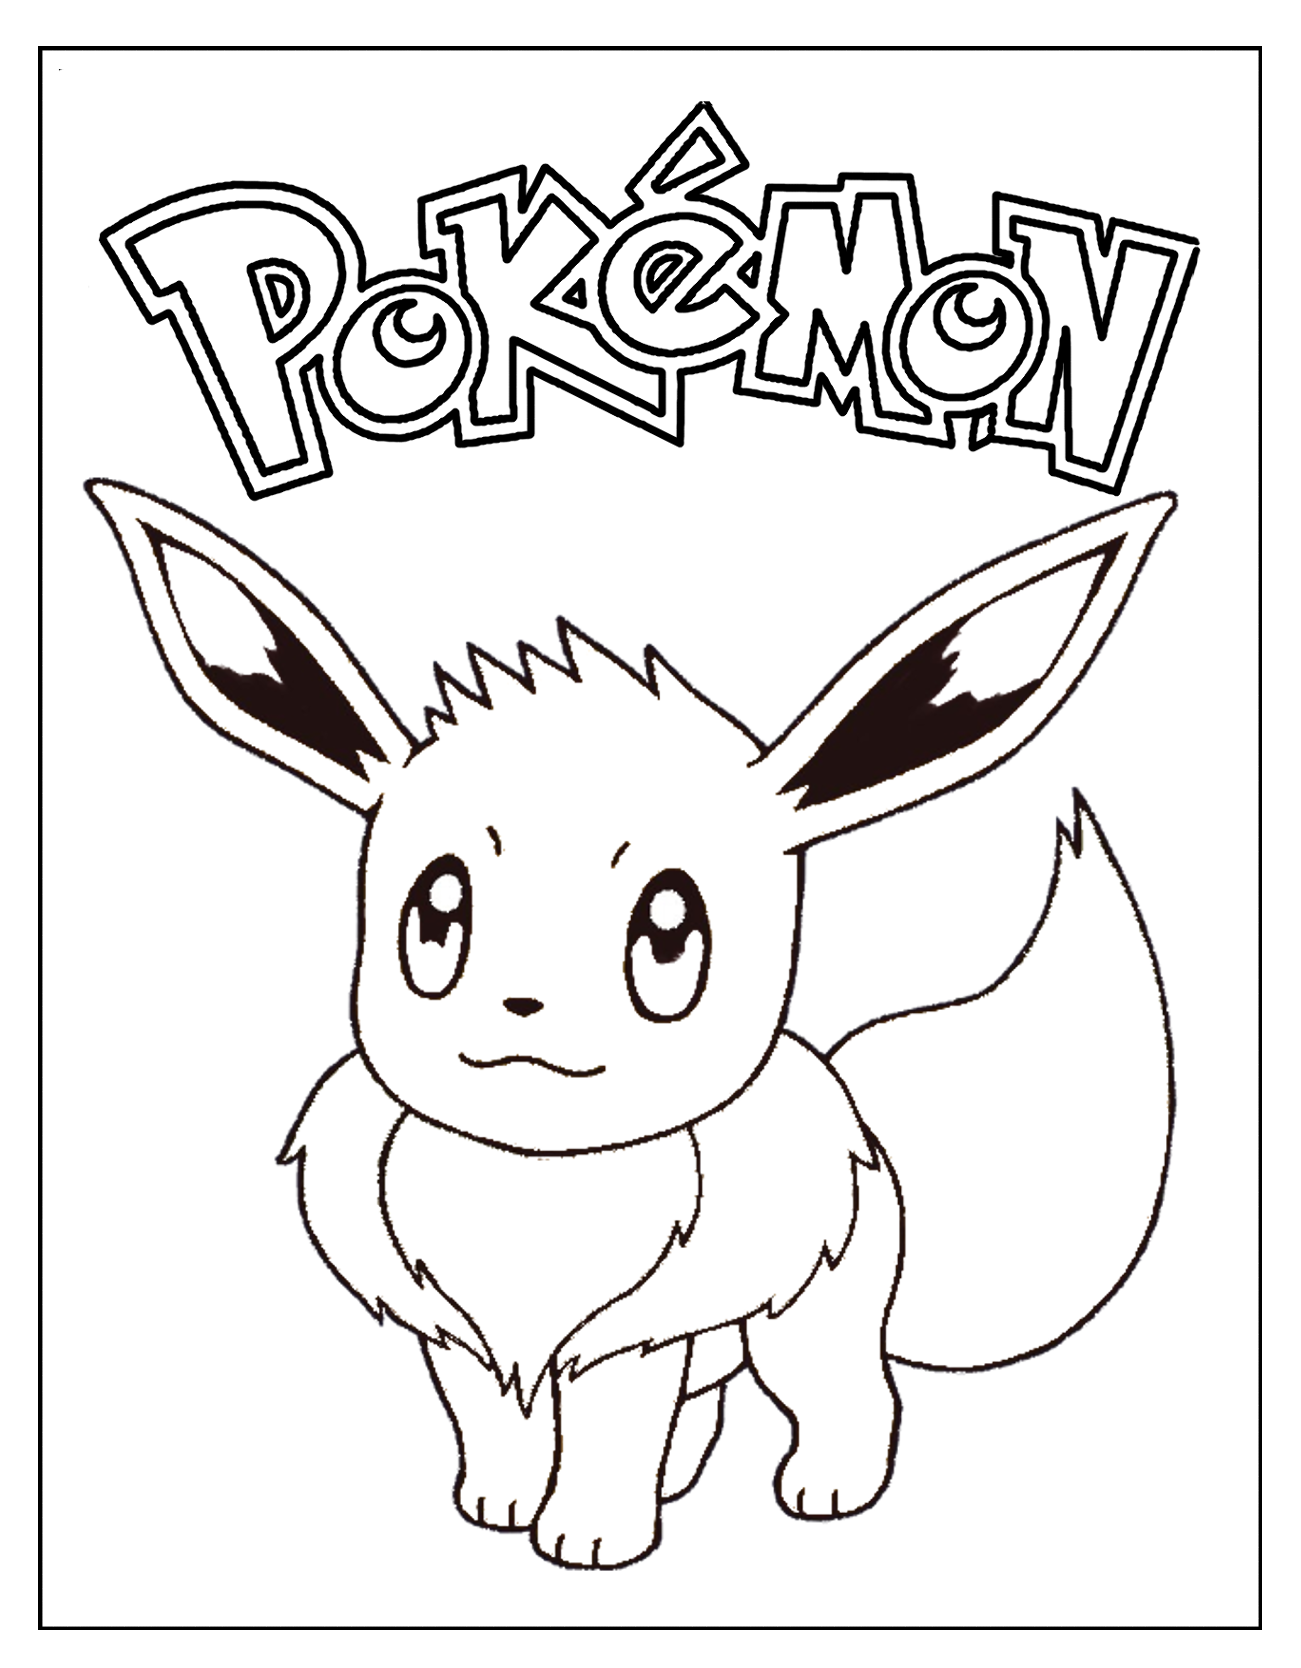 pokemon eevee coloring page Coloring pages, Pokemon